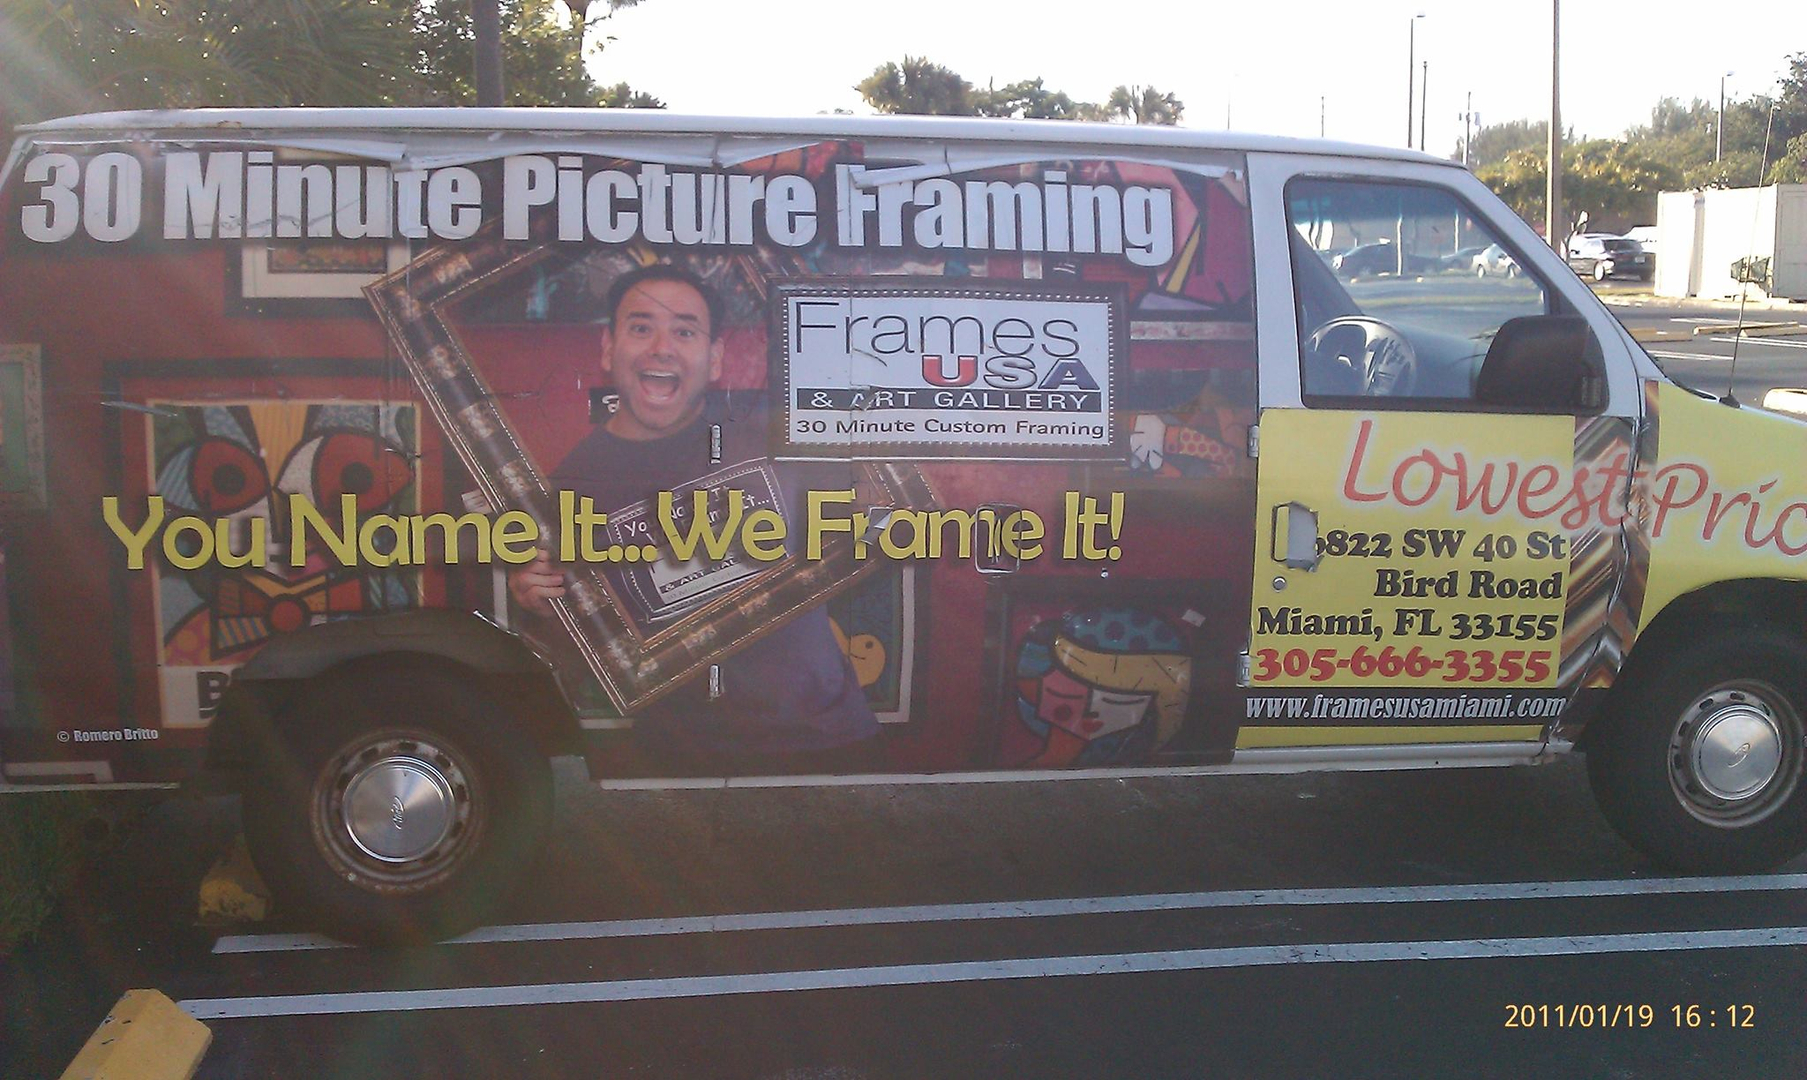 Frames usa services frames usa art gallery 30 min custom picture framing jeuxipadfo Choice Image